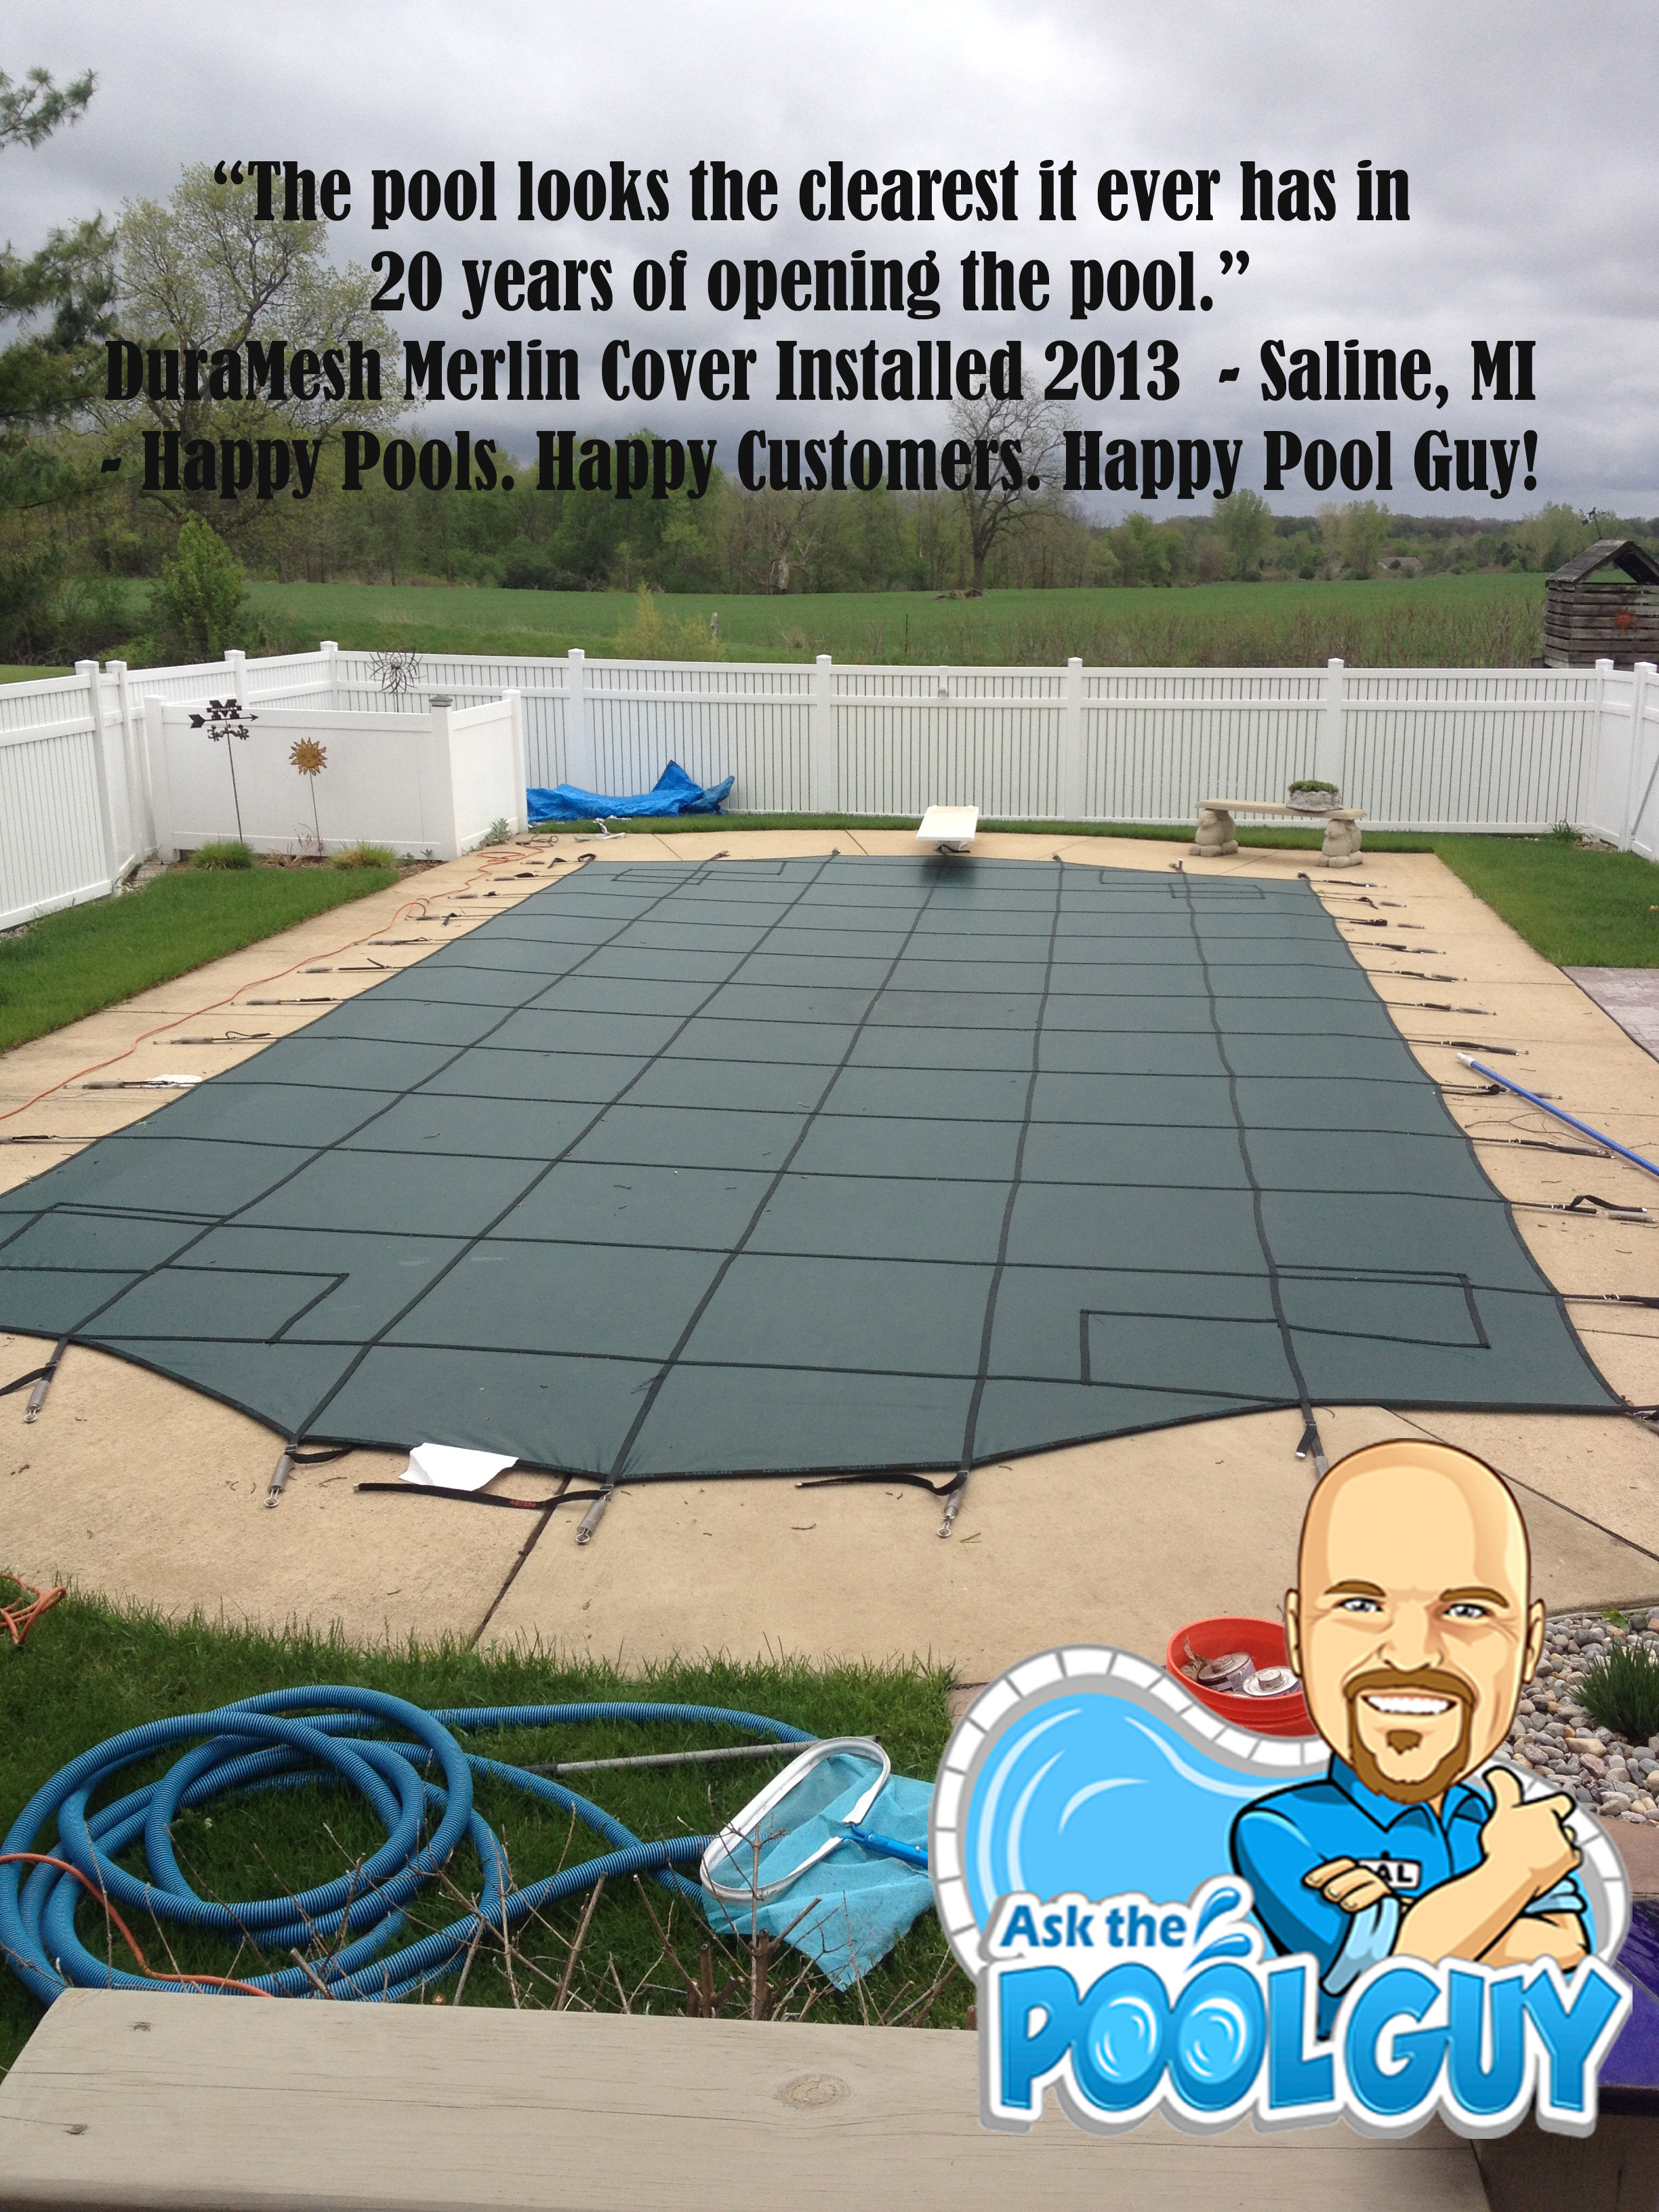 Merlin Safety Covers Pool Guy Recommended Ask The Pool Guy